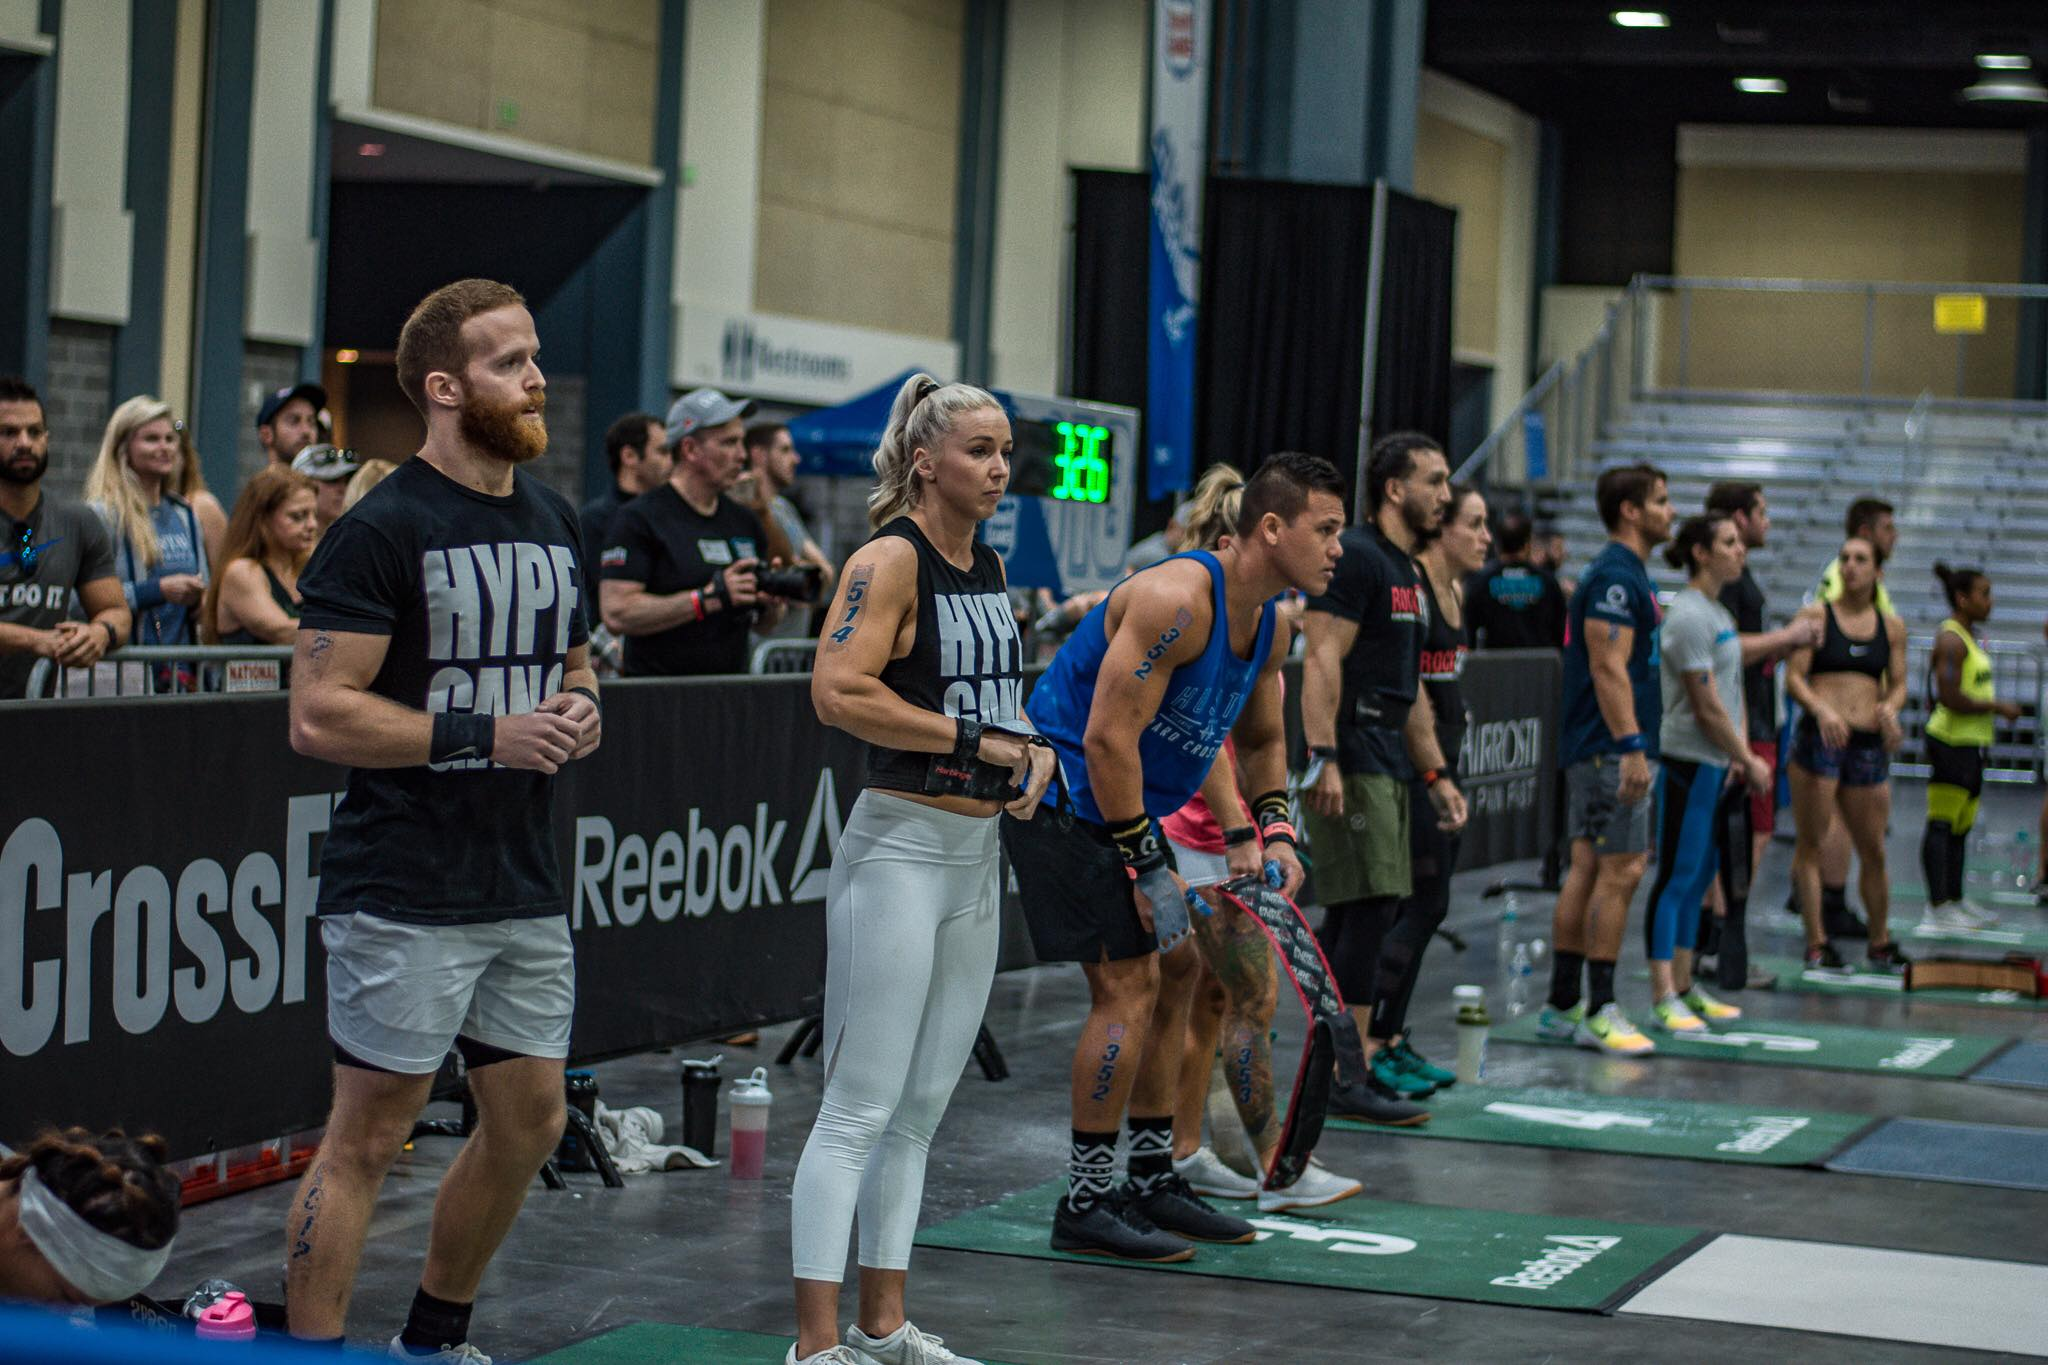 Tara Rob crossfit HYPE GANG regionals 2018 fitness gym boca raton.jpg